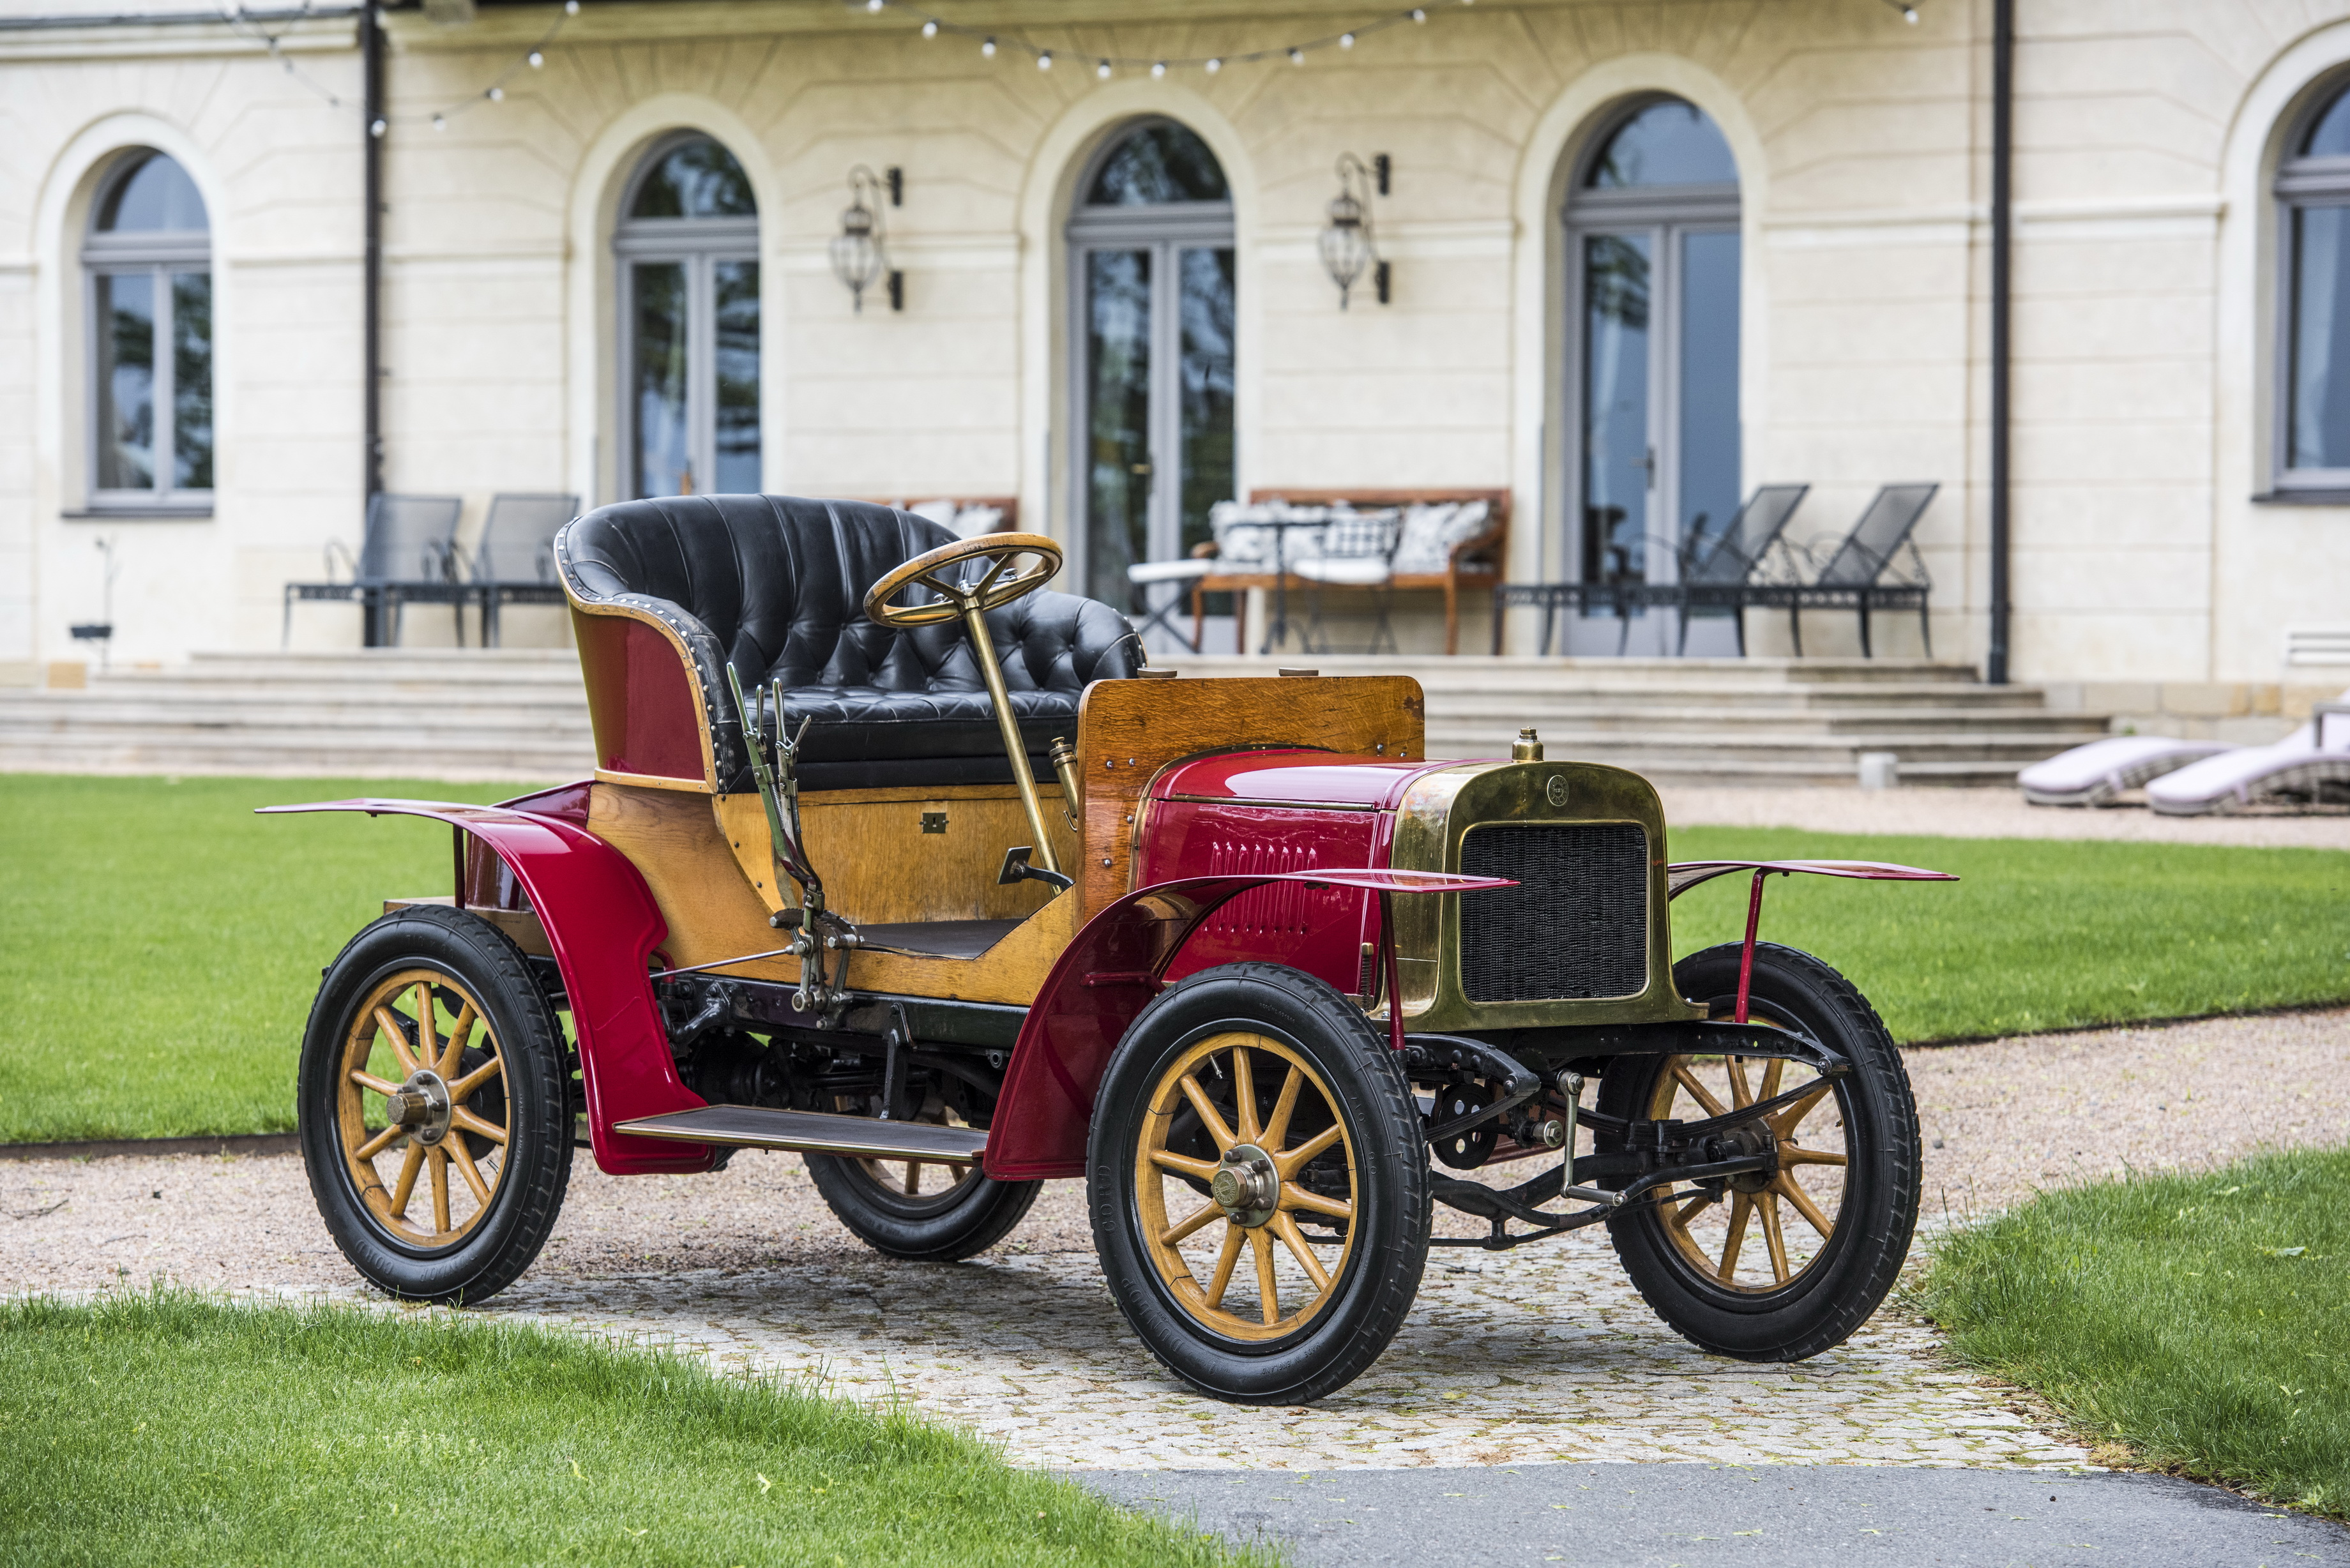 125 years of SKODA: A journey through time with twelve automotive milestones from the company's history - Image 7